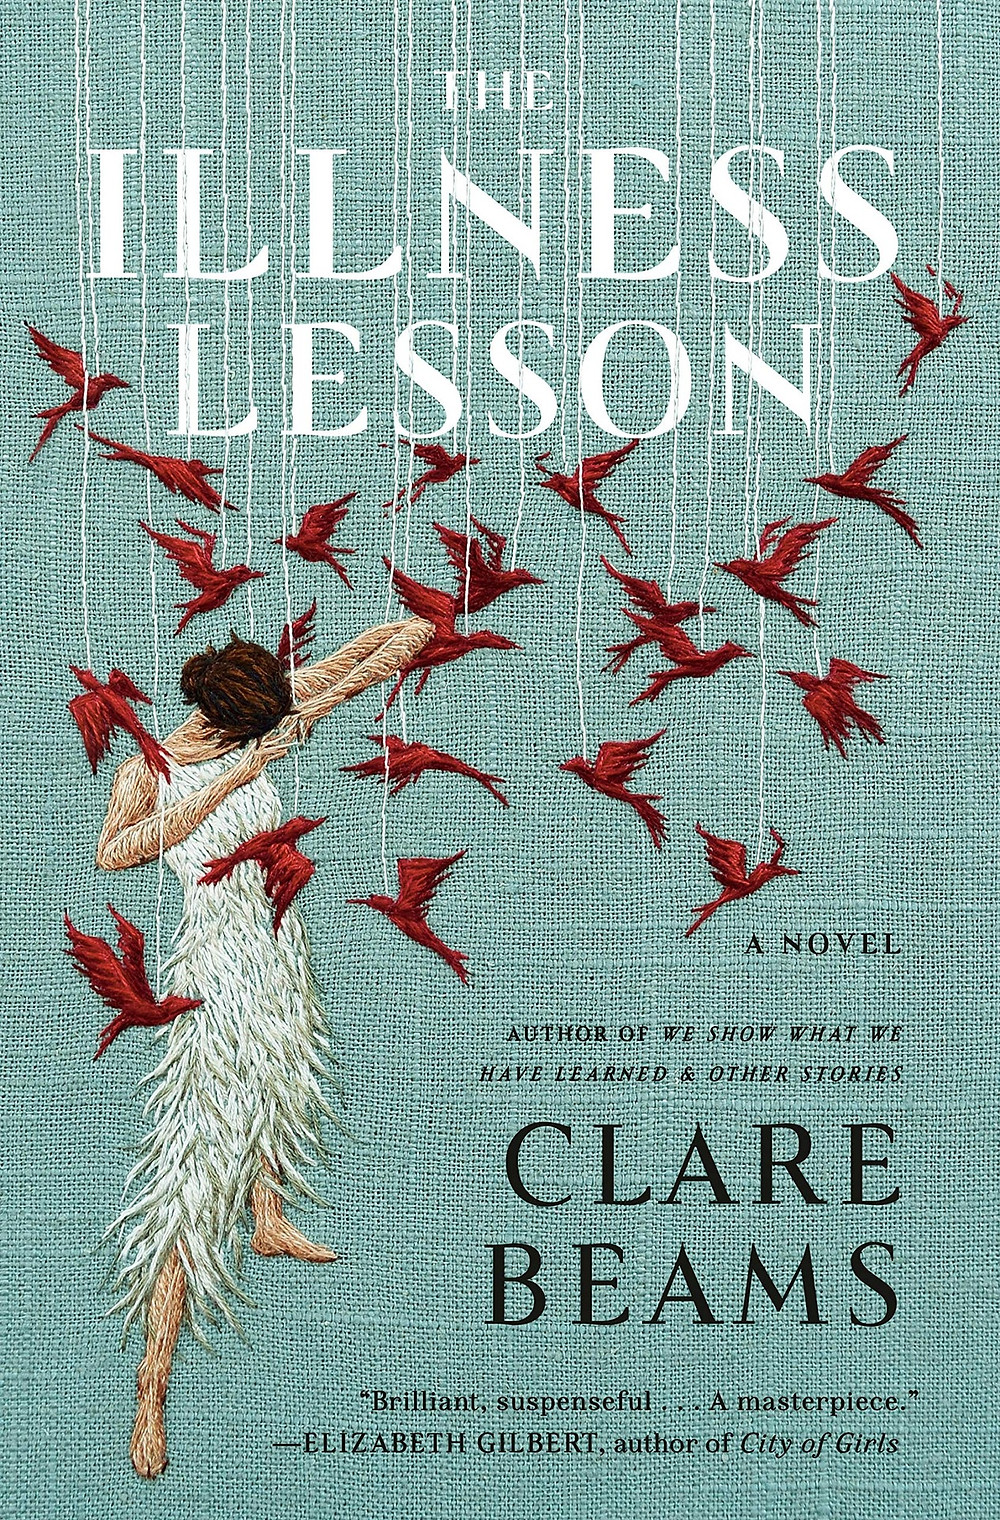 """The Illness Lesson Clare Beams (Author) """"Astoundingly original, this impressive debut belongs on the shelf with your Margaret Atwood and Octavia Butler collections.""""--New York Times Book Review Named a most anticipated book of 2020 by Time, Vanity Fair, Esquire, O Magazine, Entertainment Weekly, Bustle, BookRiot, Domino, and LitHub """"Brilliant, suspenseful...A masterpiece.""""--Elizabeth Gilbert, author of City of Girls At their newly founded school, Samuel Hood and his daughter Caroline promise a groundbreaking education for young women. But Caroline has grave misgivings. After all, her own unconventional education has left her unmarriageable and isolated, unsuited to the narrow roles afforded women in 19th century New England. When a mysterious flock of red birds descends on the town, Caroline alone seems to find them unsettling. But it's not long before the assembled students begin to manifest bizarre symptoms: Rashes, seizures, headaches, verbal tics, night wanderings. One by one, they sicken. Fearing ruin for the school, Samuel overrules Caroline's pleas to inform the girls' parents and turns instead to a noted physician, a man whose sinister ministrations--based on a shocking historic treatment--horrify Caroline. As the men around her continue to dictate, disastrously, all terms of the girls' experience, Caroline's body too begins to betray her. To save herself and her young charges, she will have to defy every rule that has governed her life, her mind, her body, and her world. Clare Beams's extraordinary debut story collection We Show What We Have Learned earned comparisons to Shirley Jackson, Karen Russell and Aimee Bender, and established Beams as a writer who """"creates magical-realist pieces that often calculate the high cost of being a woman"""" (The Rumpus). Precisely observed, hauntingly atmospheric, as fiercely defiant as it is triumphant, The Illness Lesson is a spellbinding piece of storytelling. Product Details Price: $26.95  $24.26 Publisher: Doubleday Boo"""